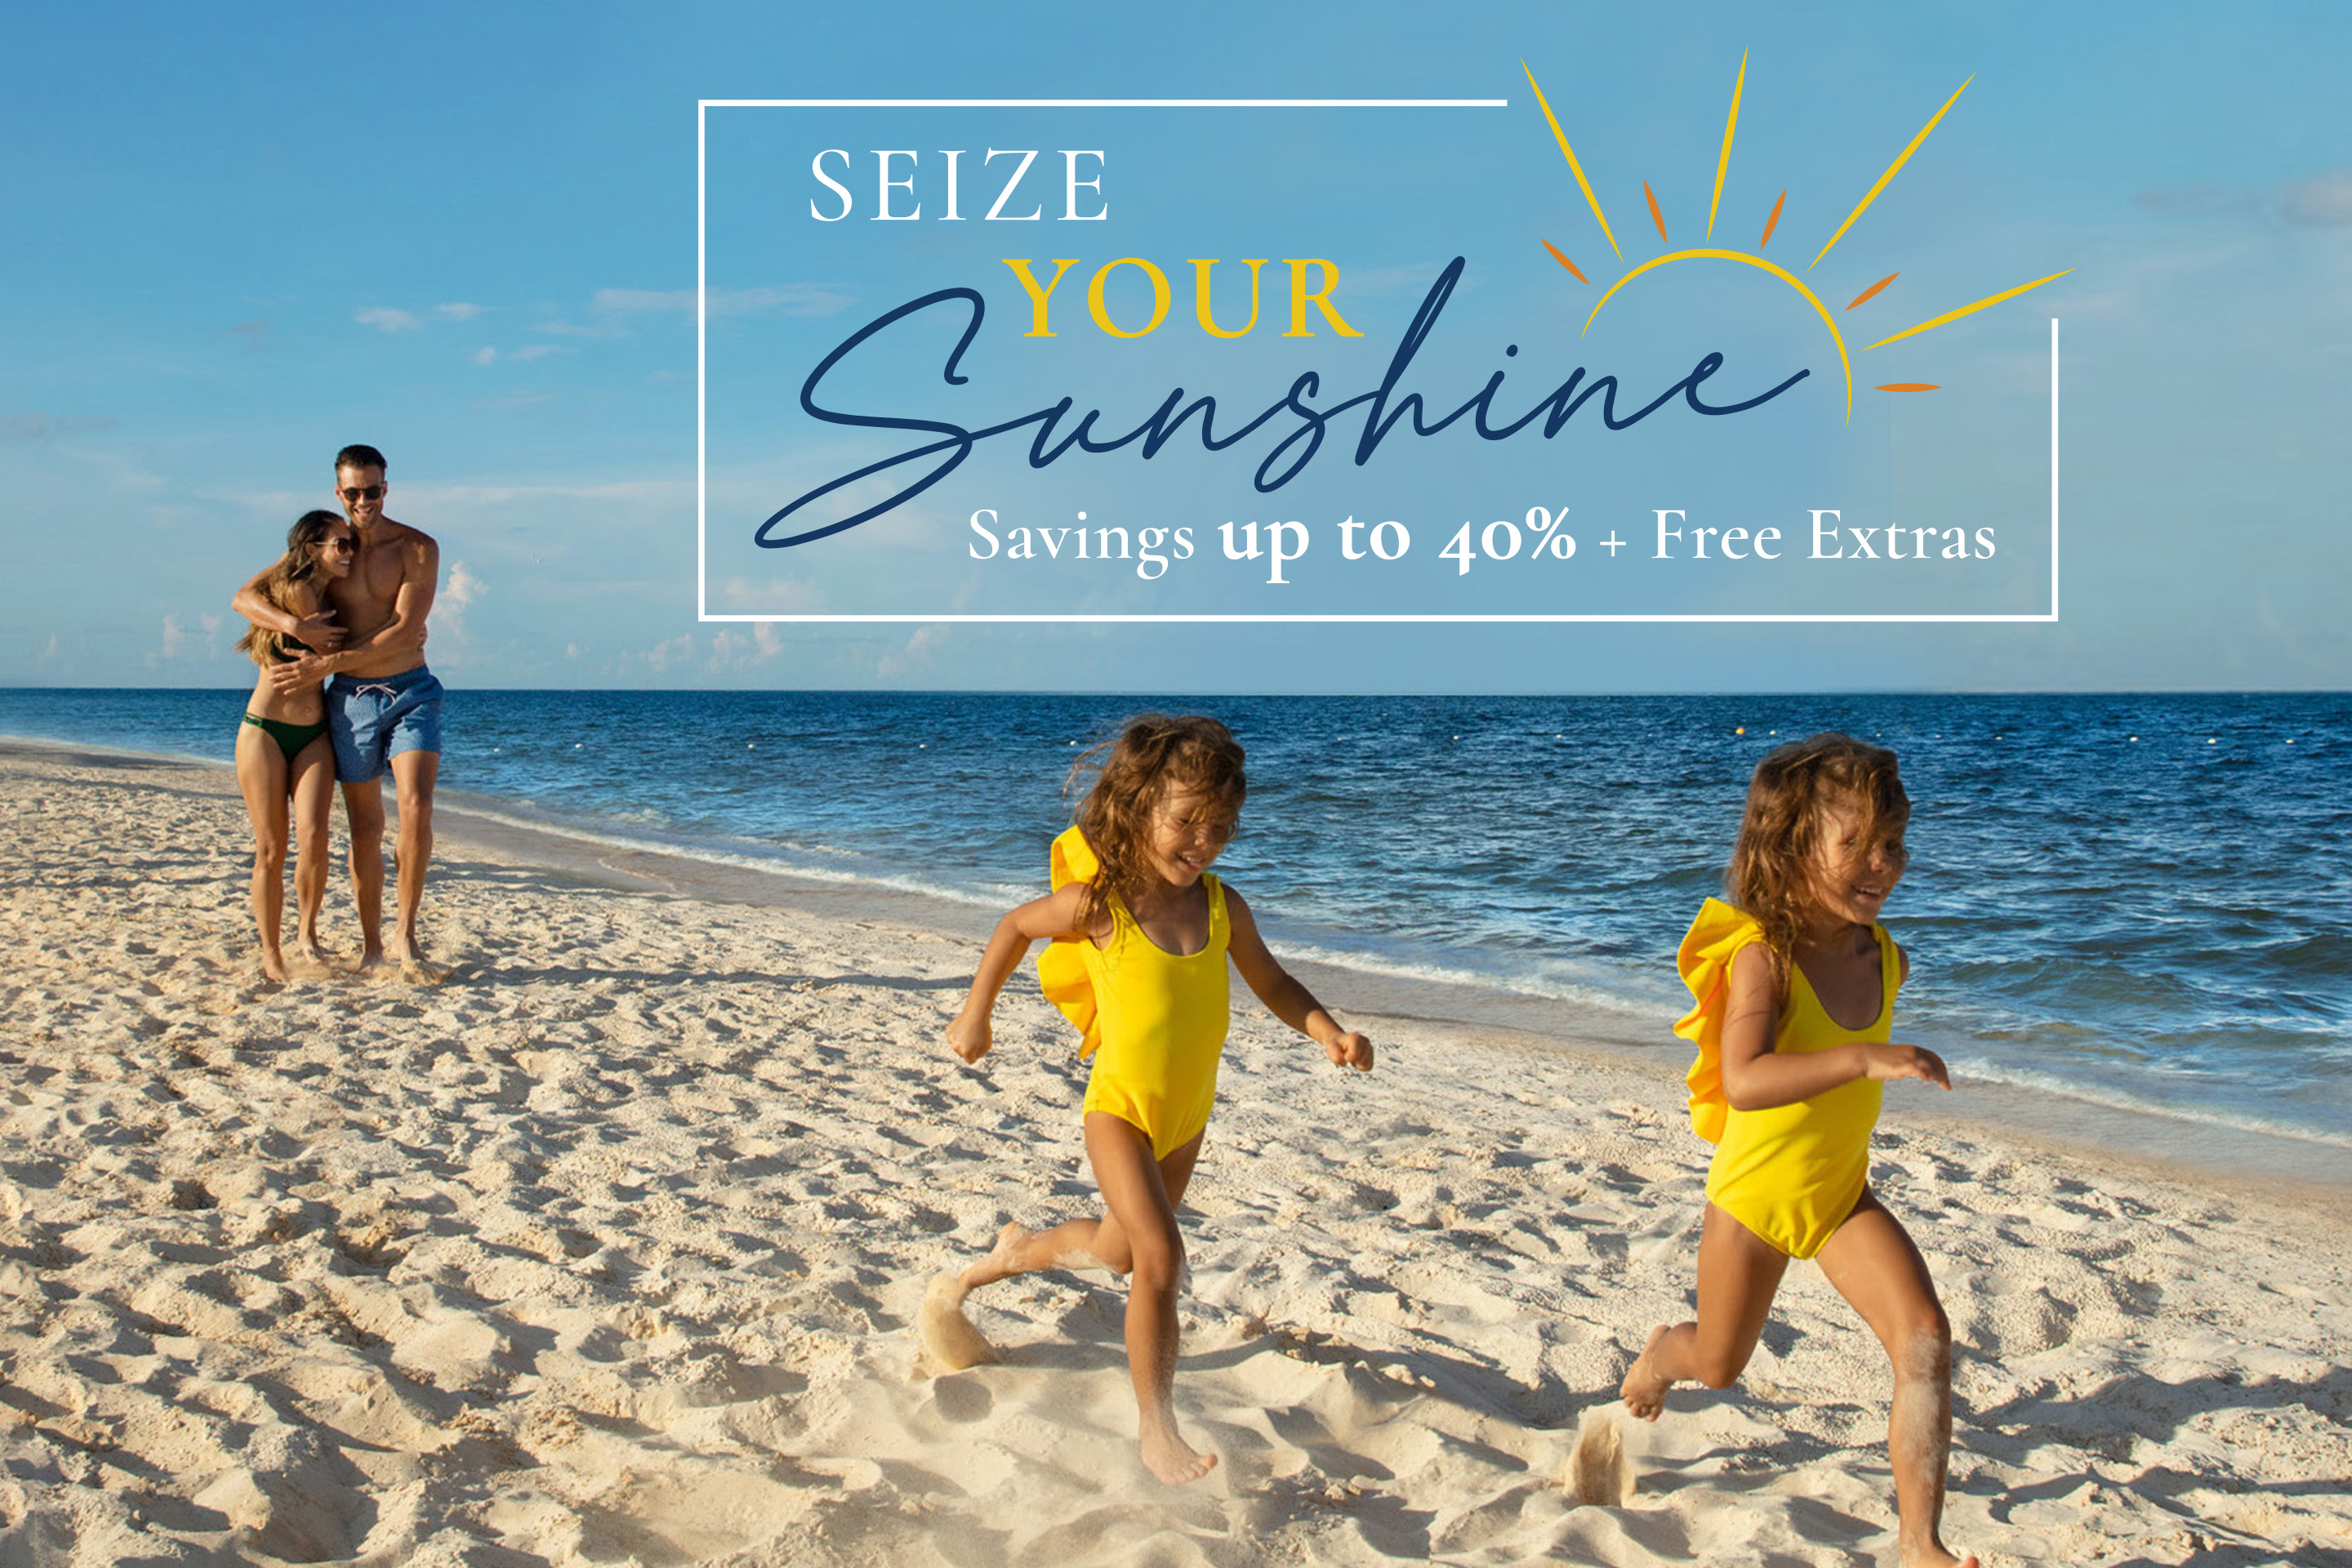 AM Resorts – Seize Your Sunshine, SAVINGS UP TO 40% + FREE EXTRAS!